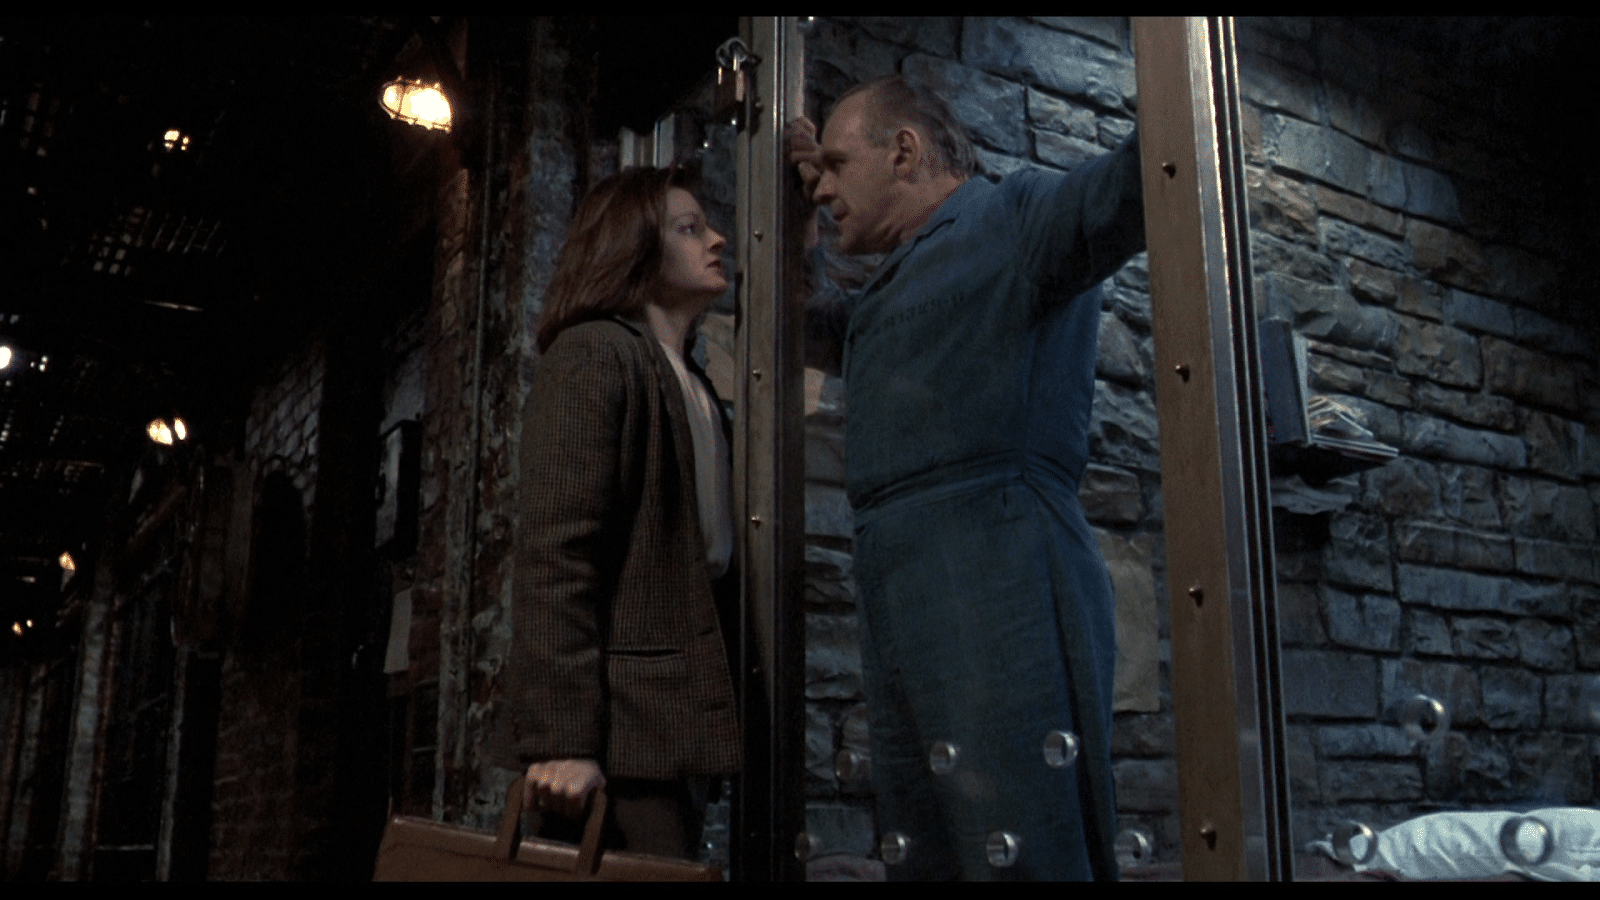 screenwriting electricity in The Silence of the Lambs